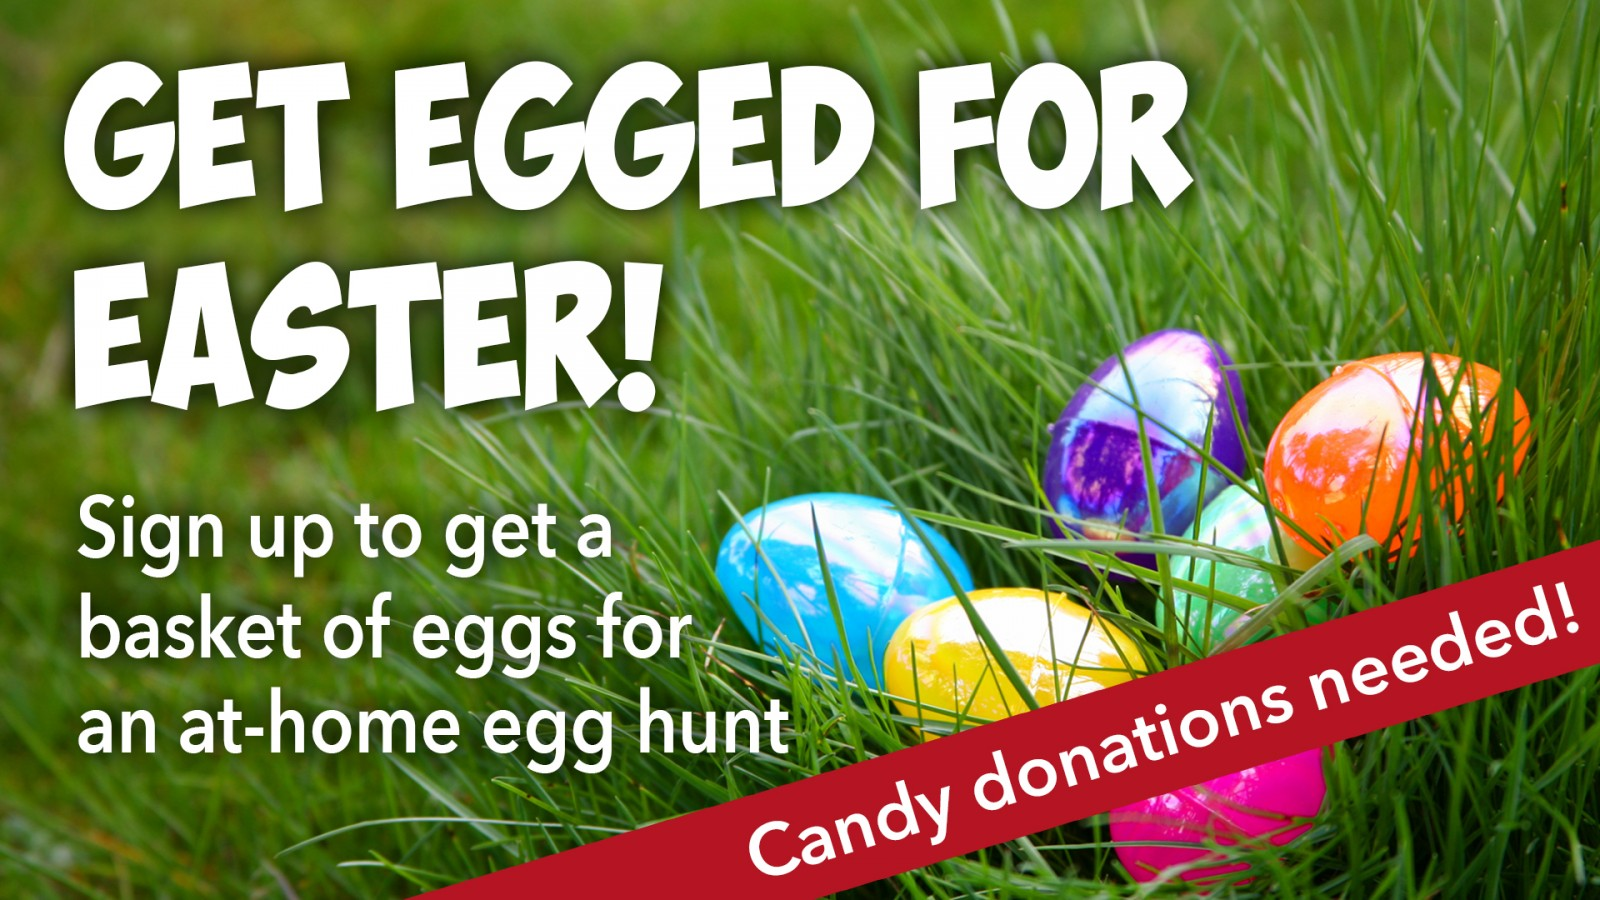 Get Egged | 2021 sign up + donate